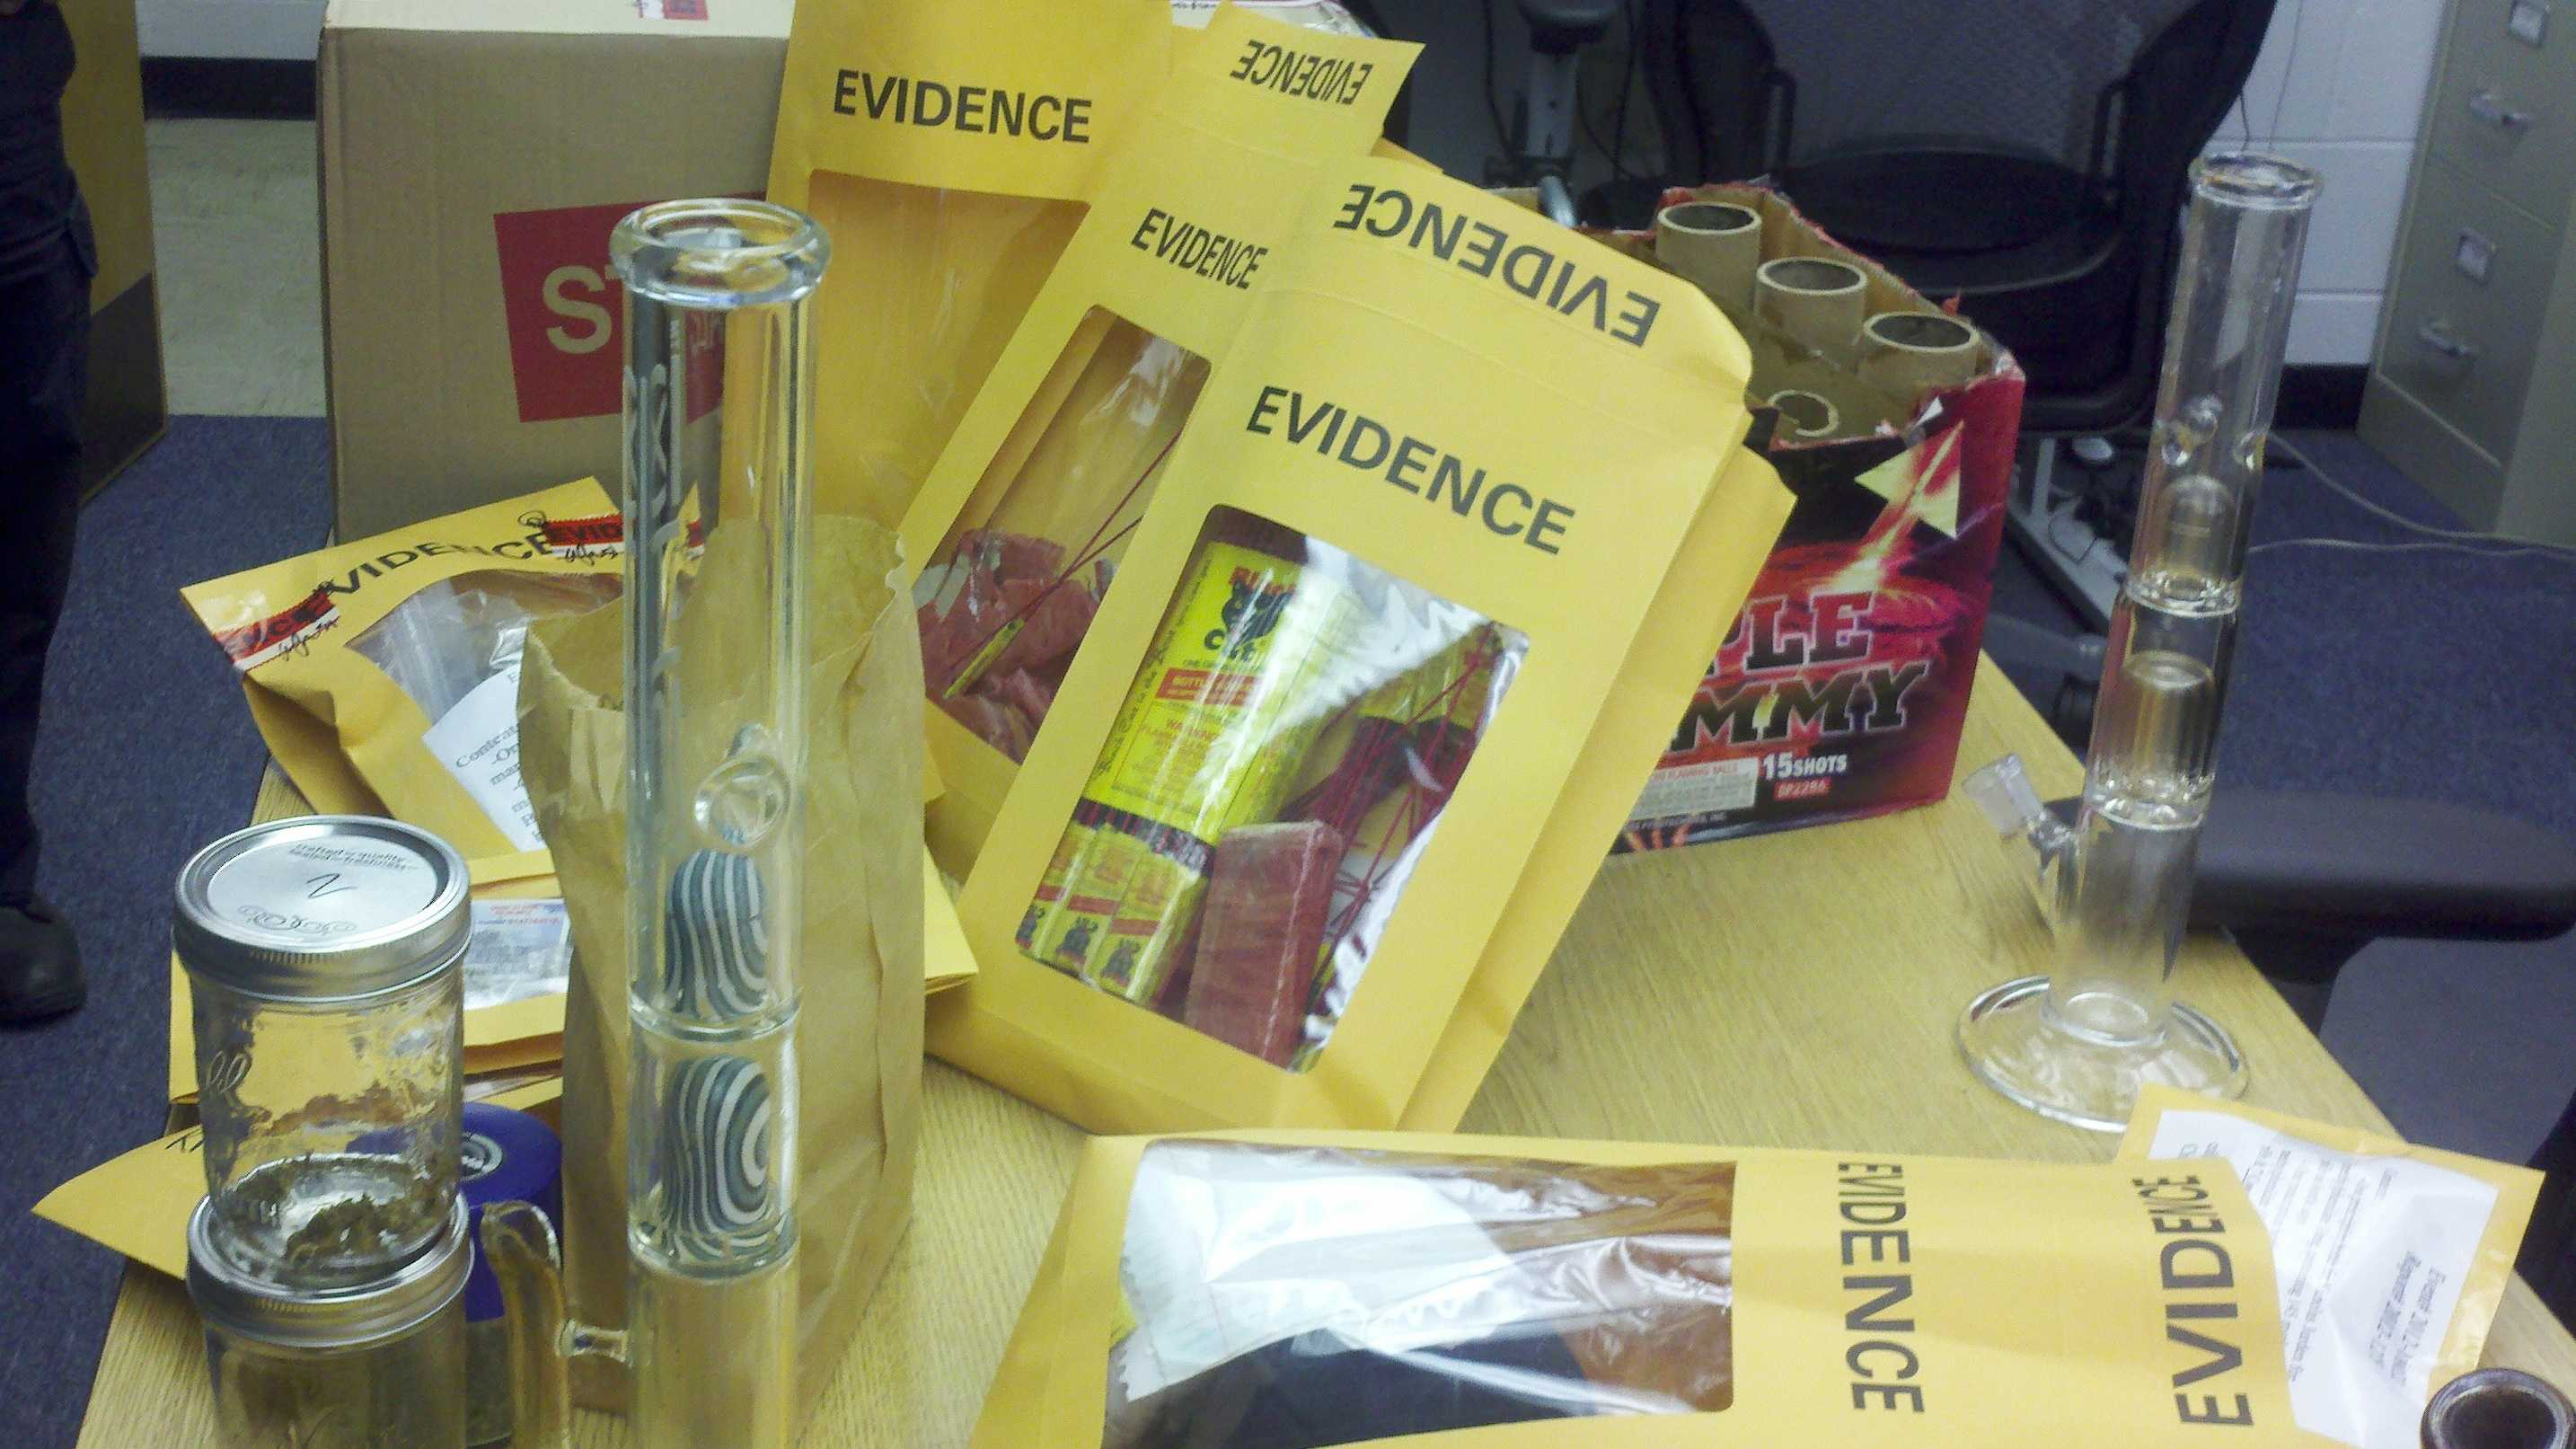 Images: Fireworks, drugs found in Miami frat houses.